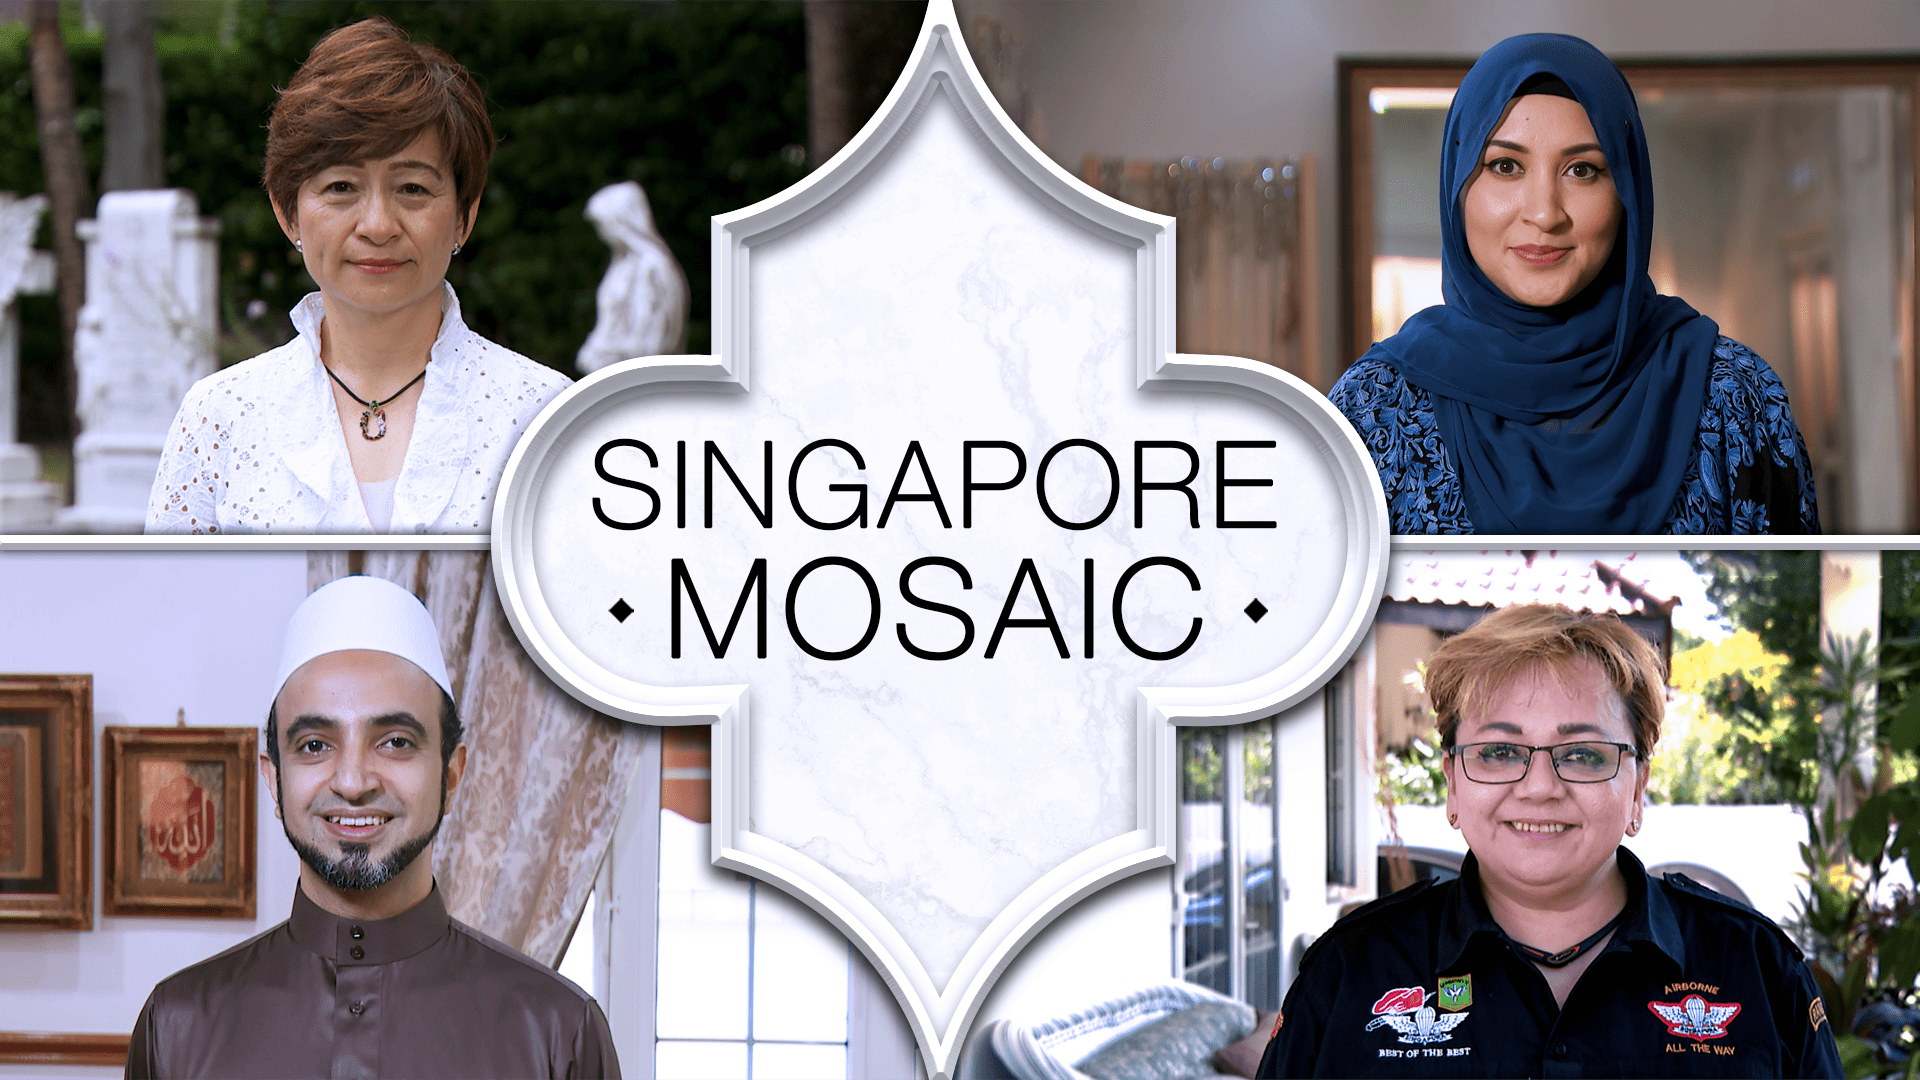 Singapore Mosaic Episode 2 Trailer